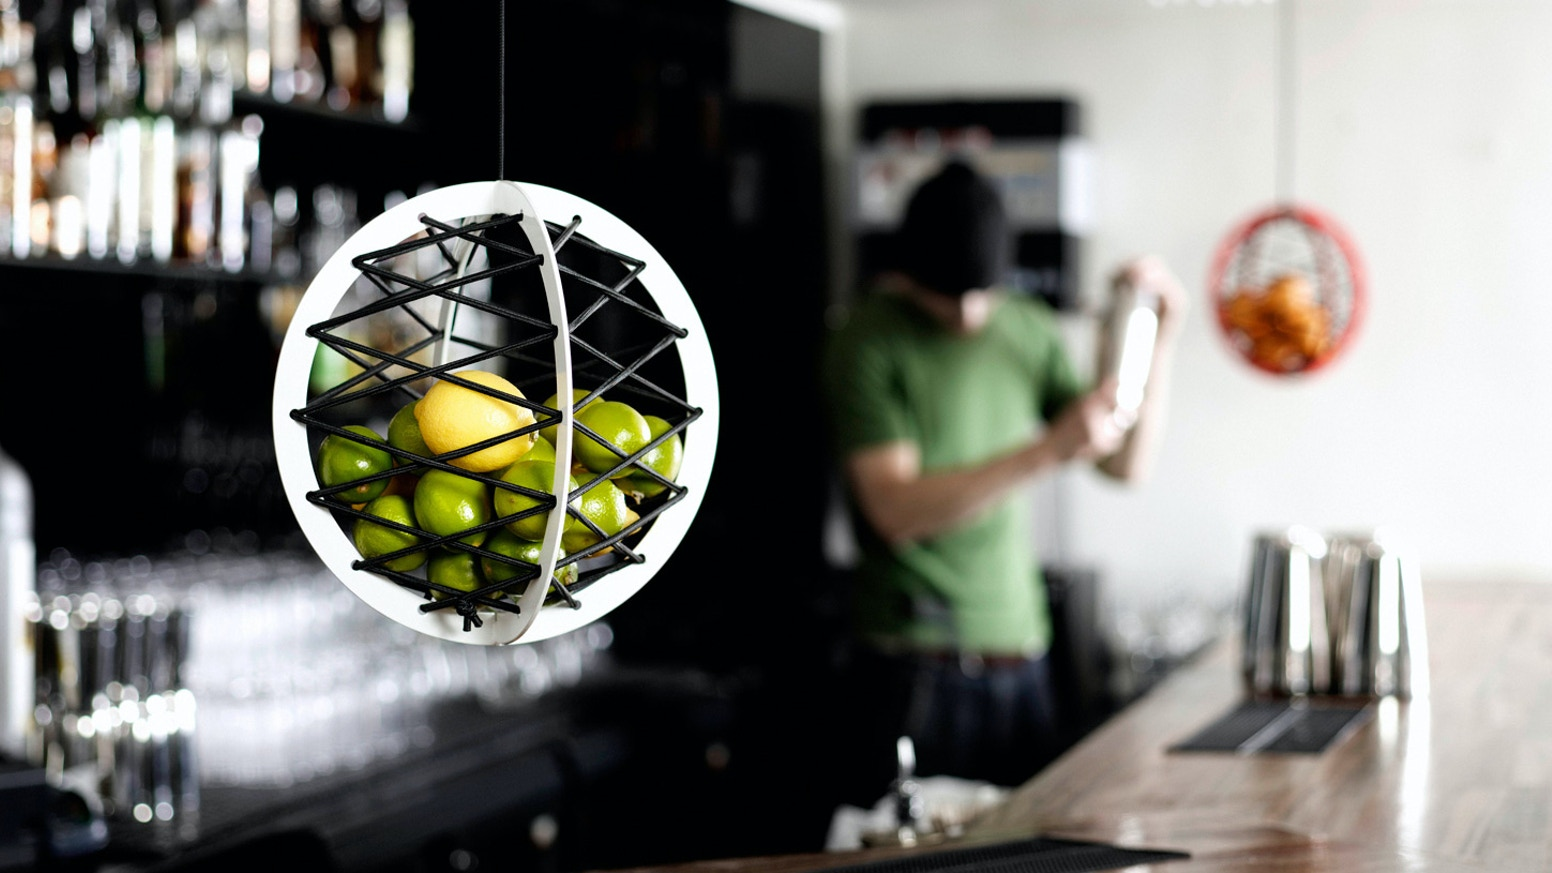 Pluk will keep your fruit fresh longer. It is a great way to save space and free up your counter.